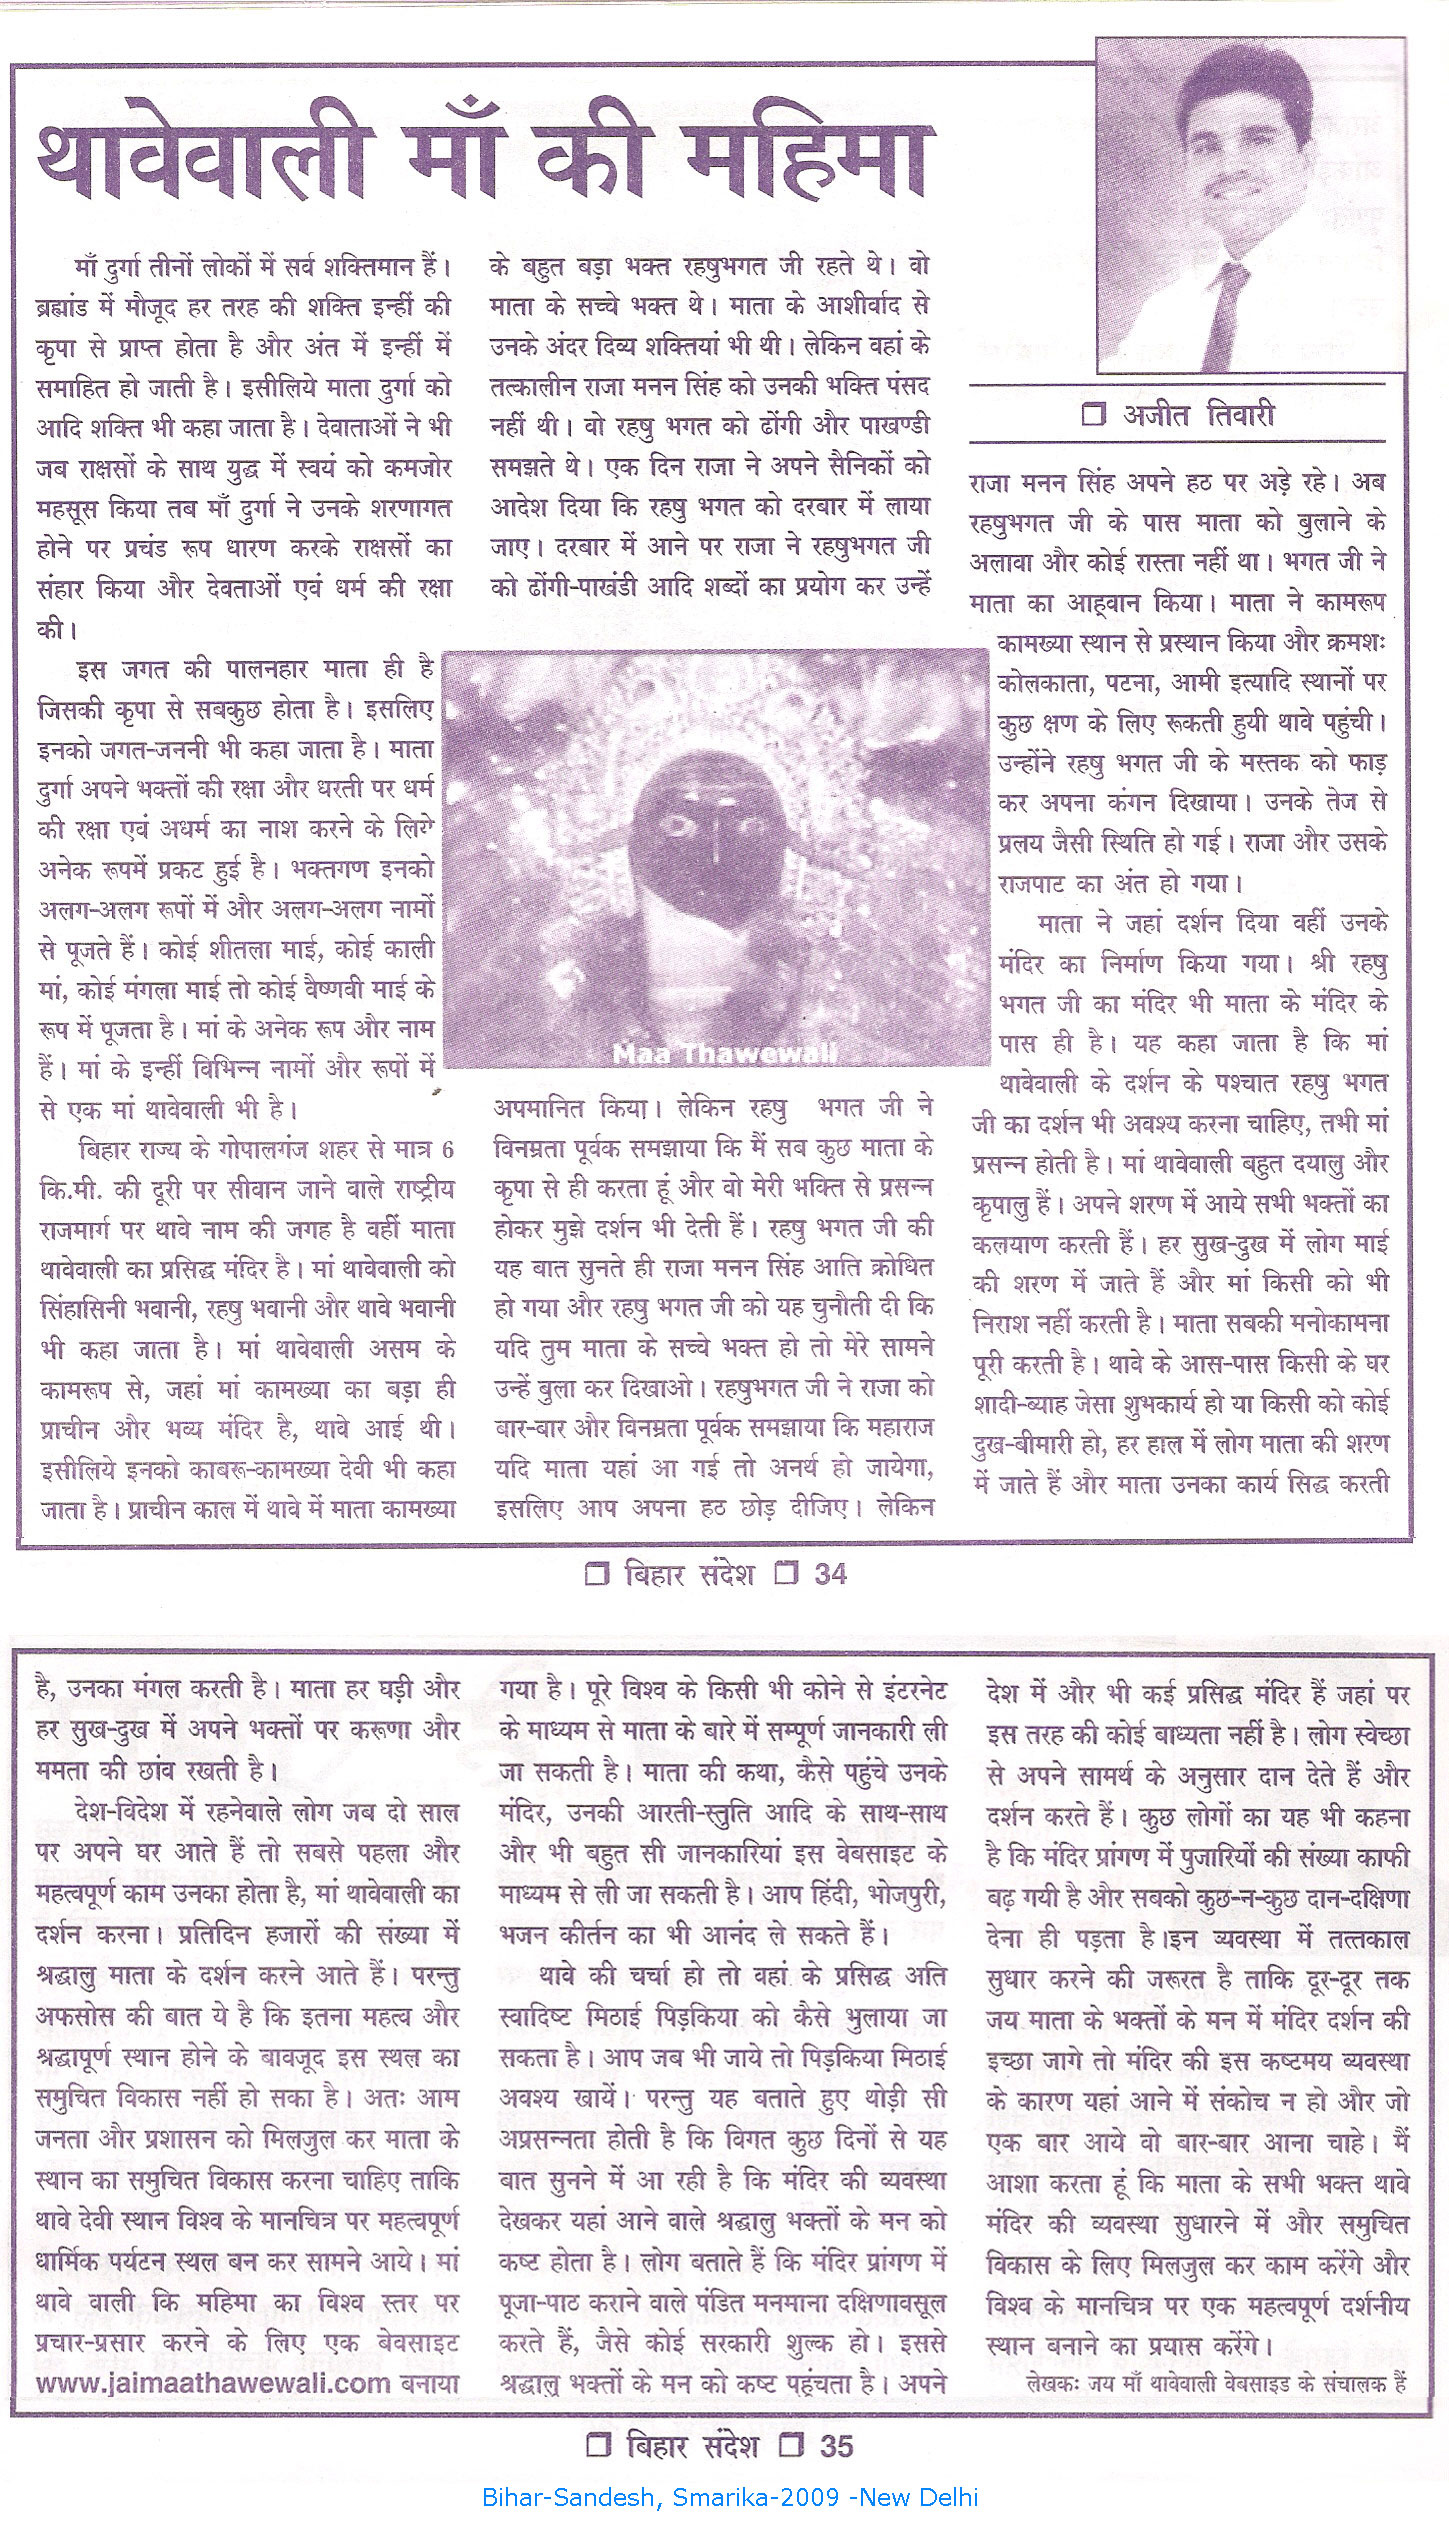 maa thawewali article in bihar sandesh smarika